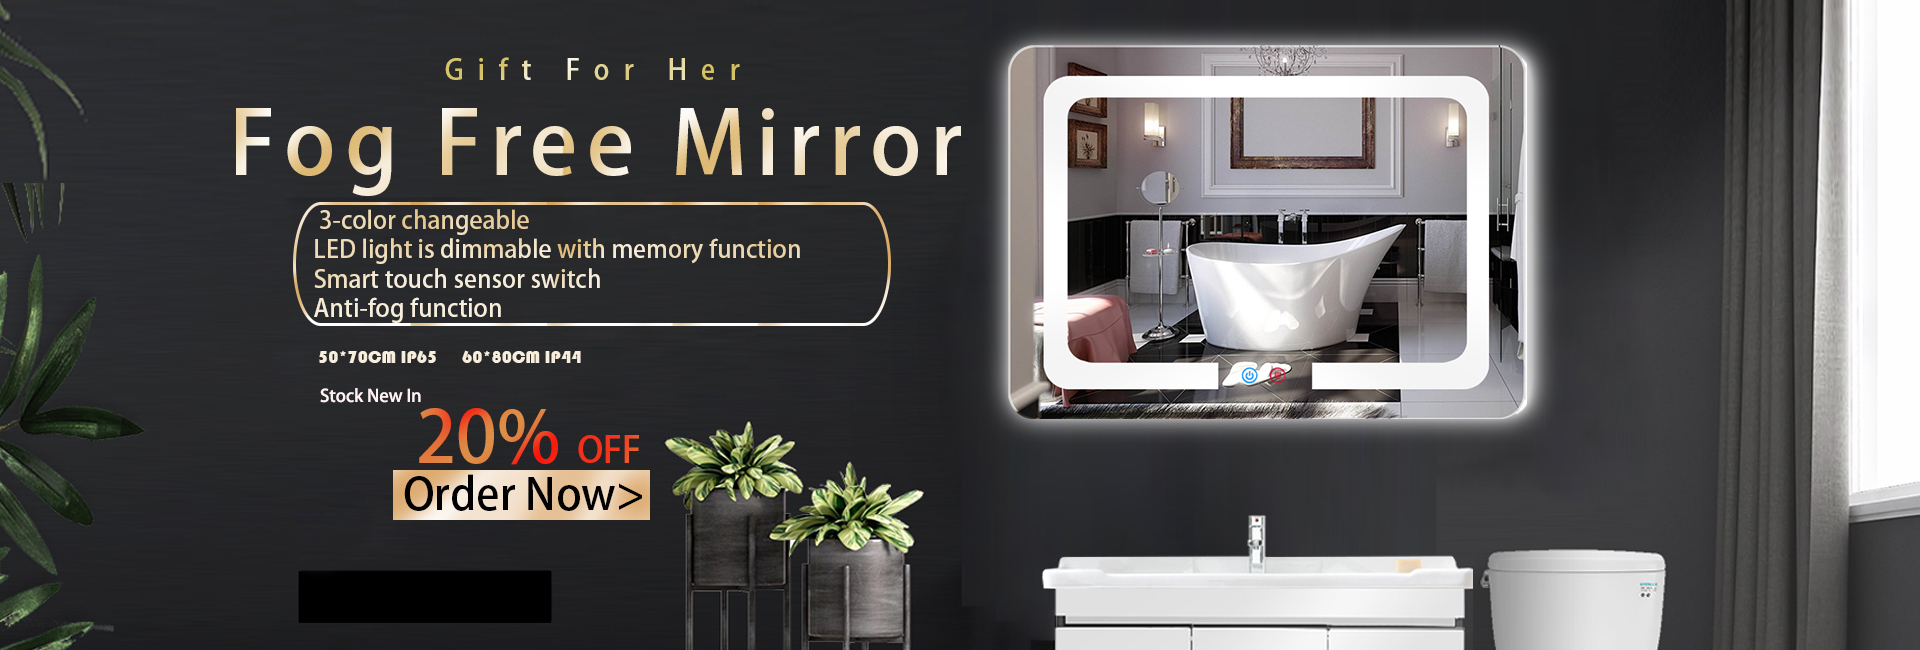 Fog Free Mirror 20% OFF